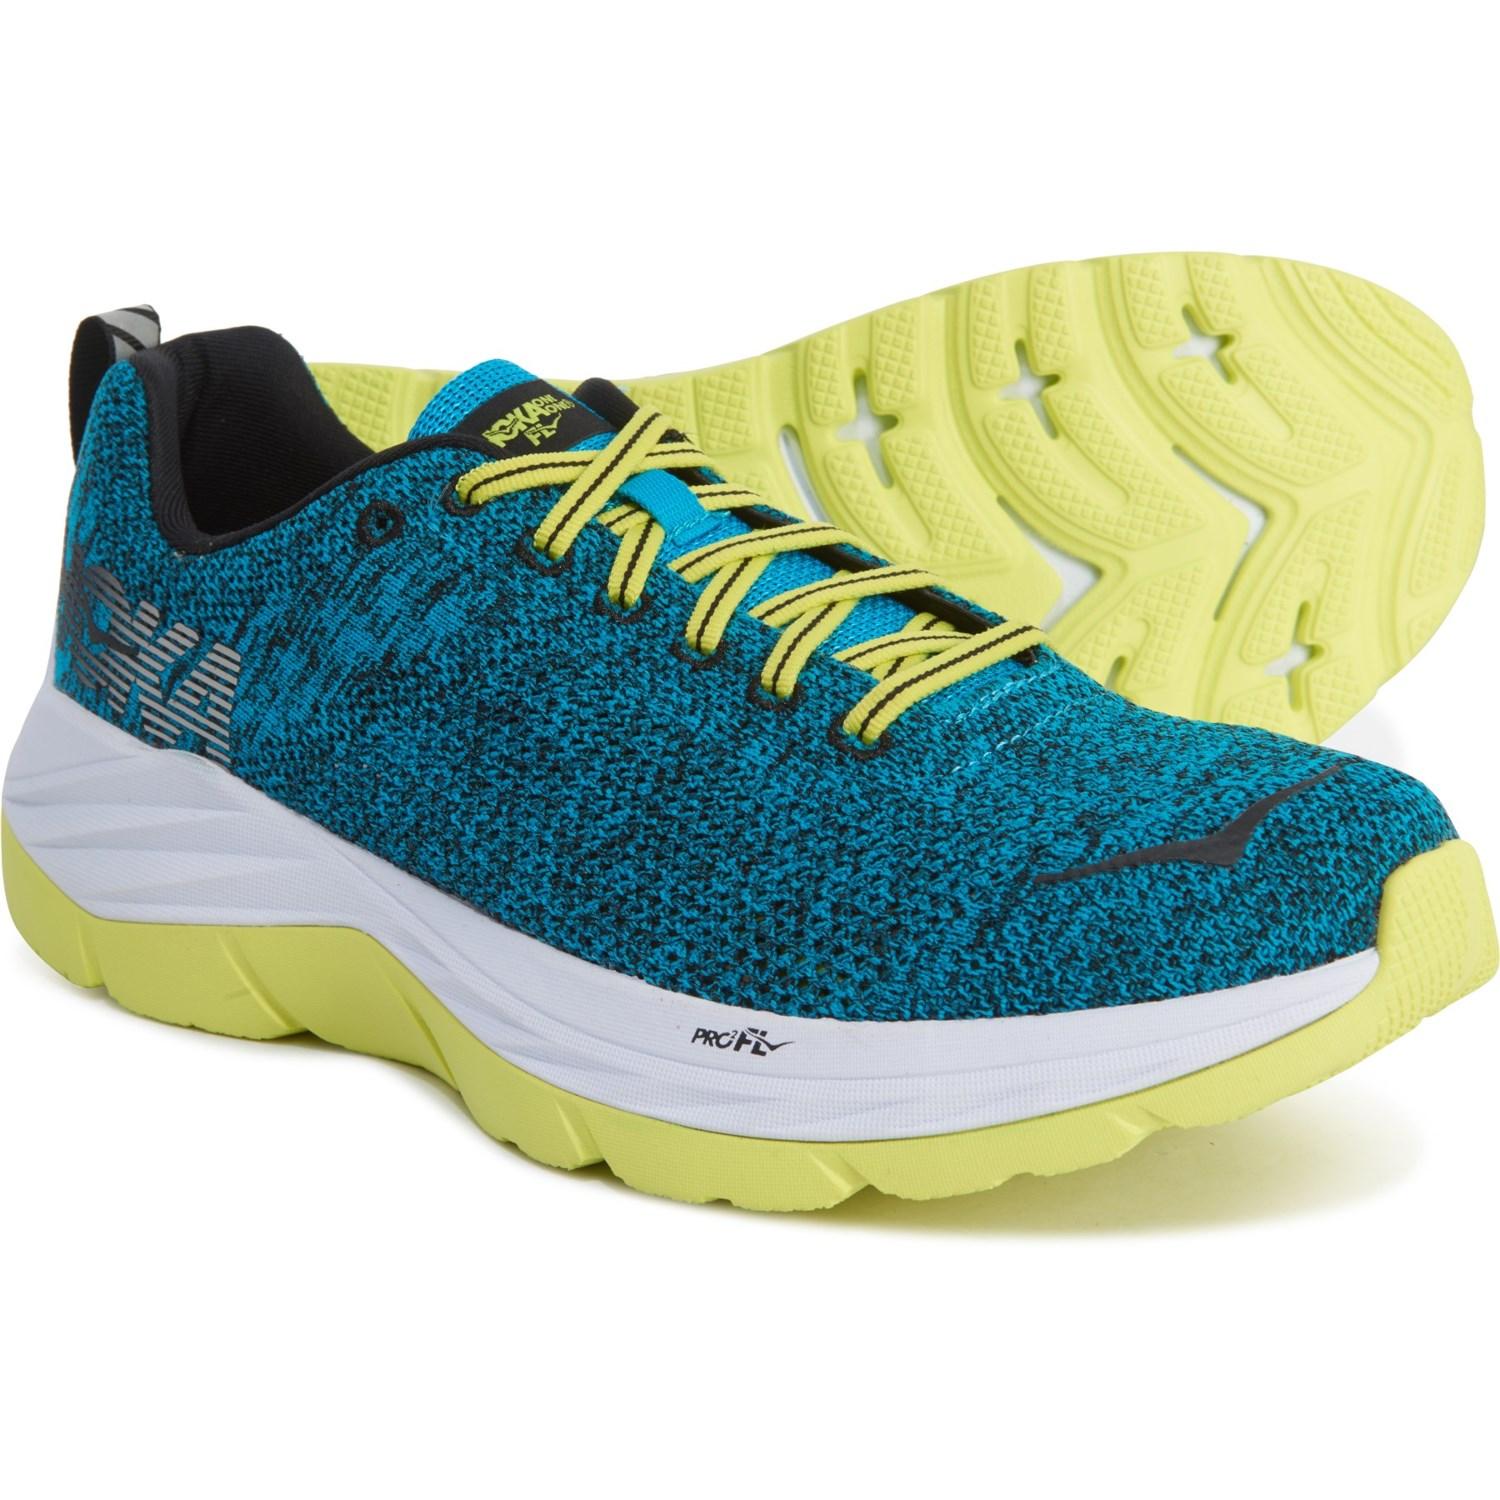 hot sale online 38b21 98ea2 Hoka One One Mach Running Shoes (For Men)